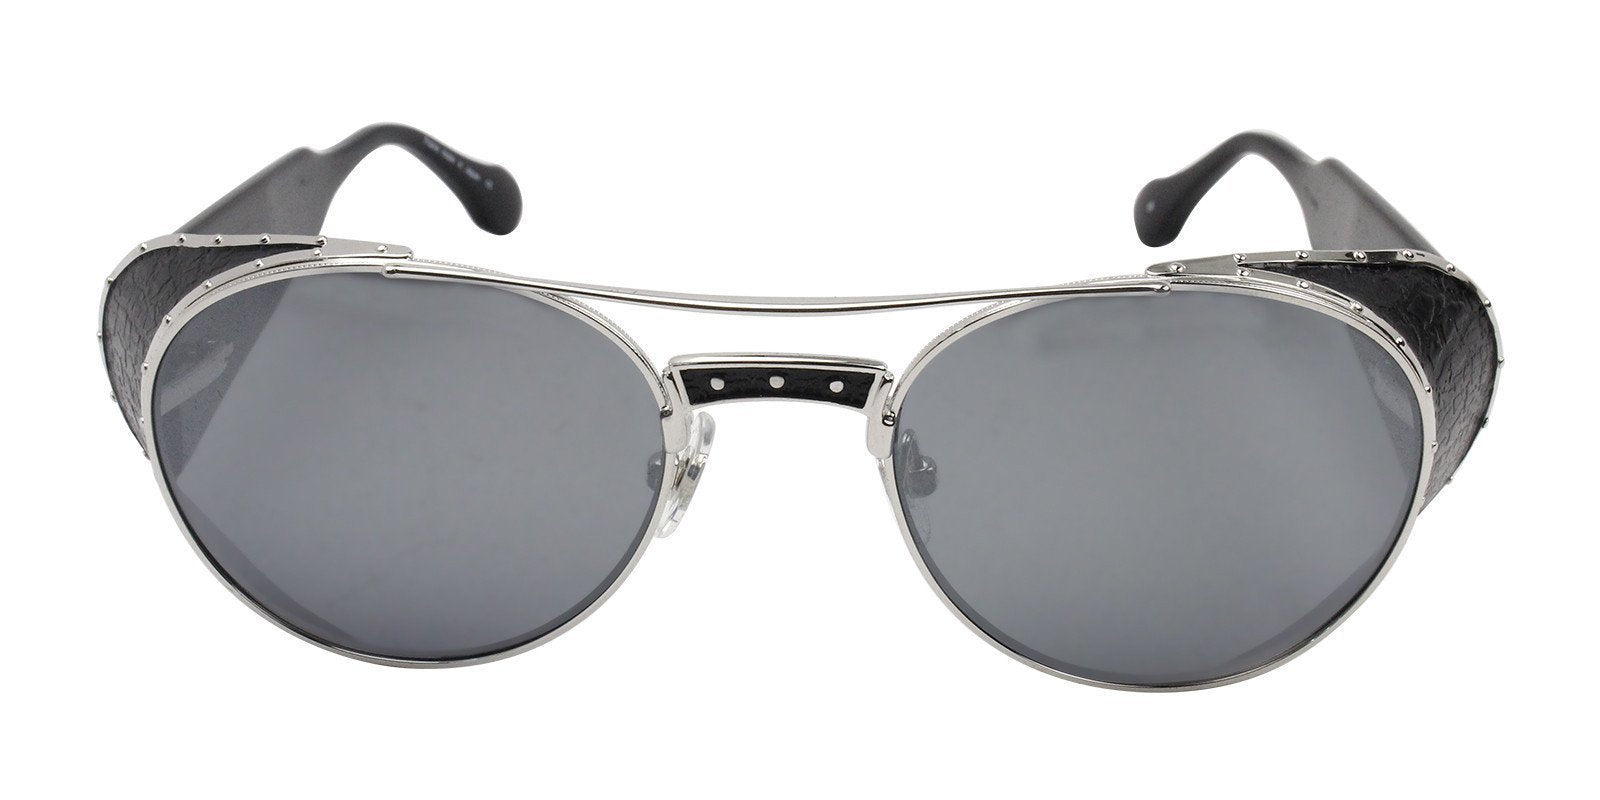 Matsuda - M3032 Silver/Silver Mirror Oval Women Sunglasses - 51mm-Sunglasses-Designer Eyes